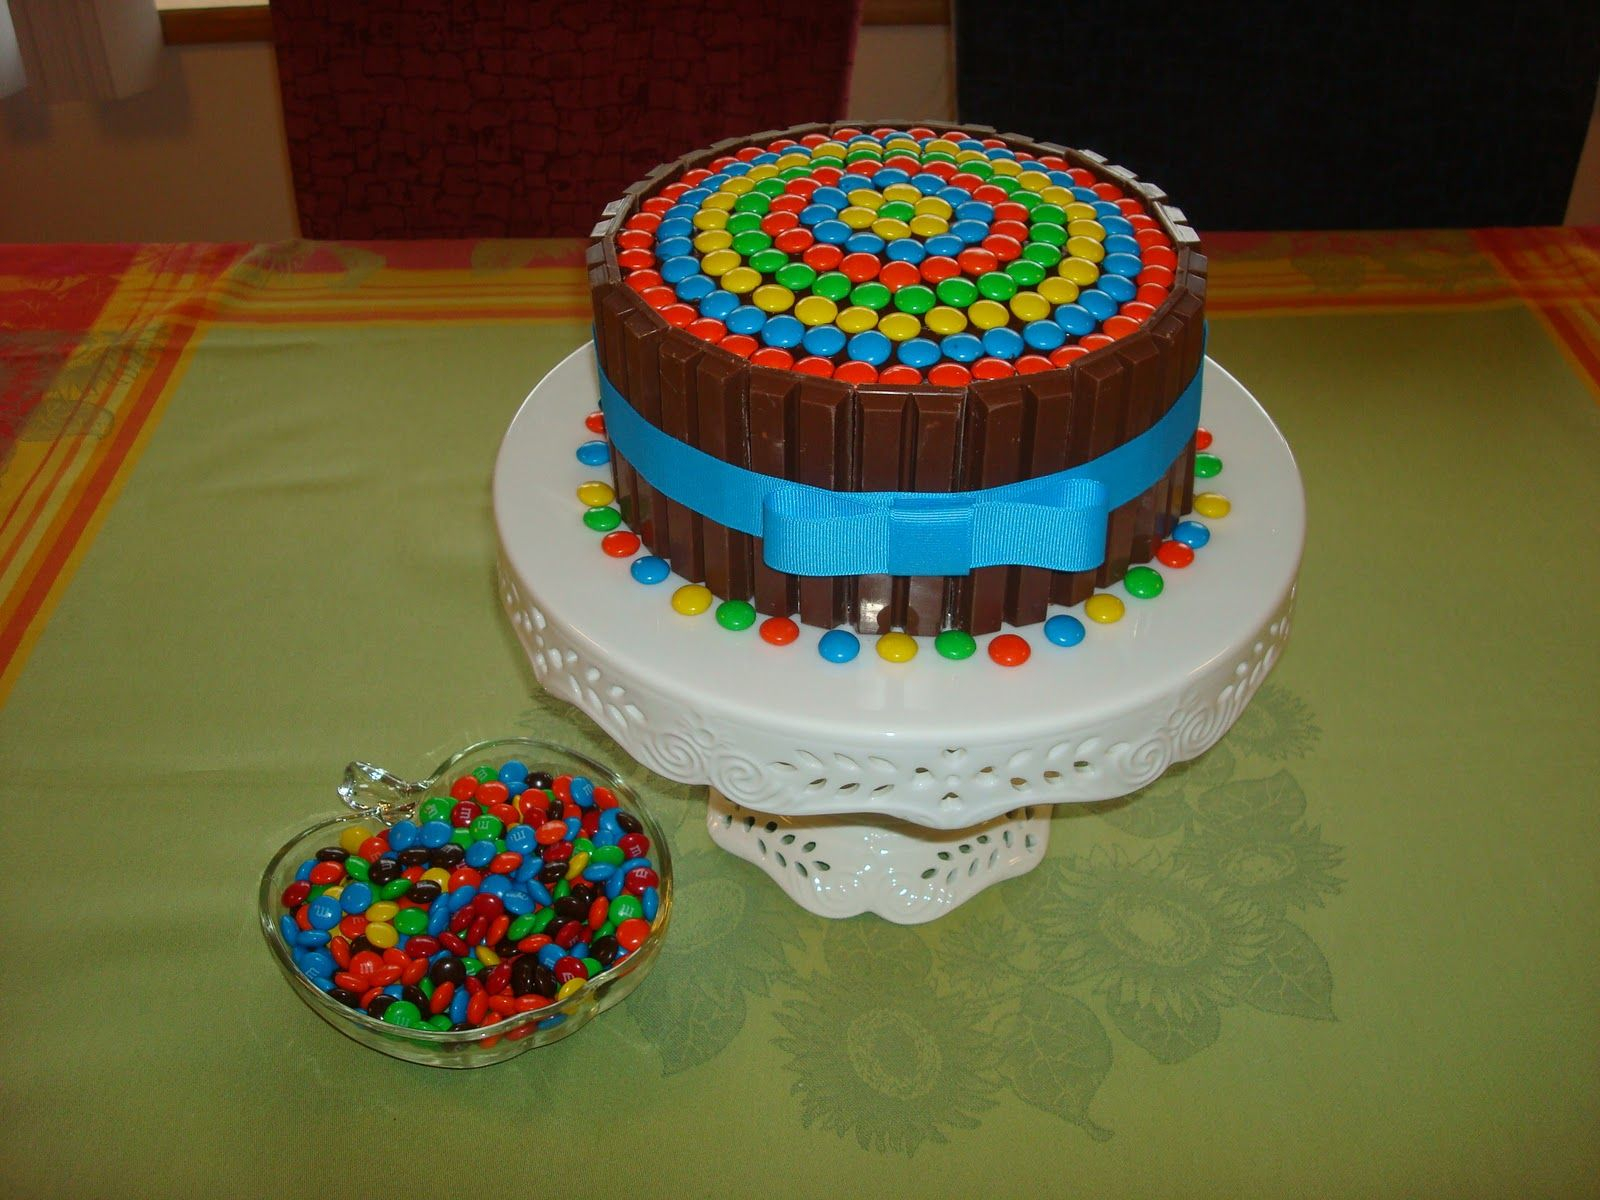 25+ Awesome Image of Birthday Cake For 12 Year Old Boy